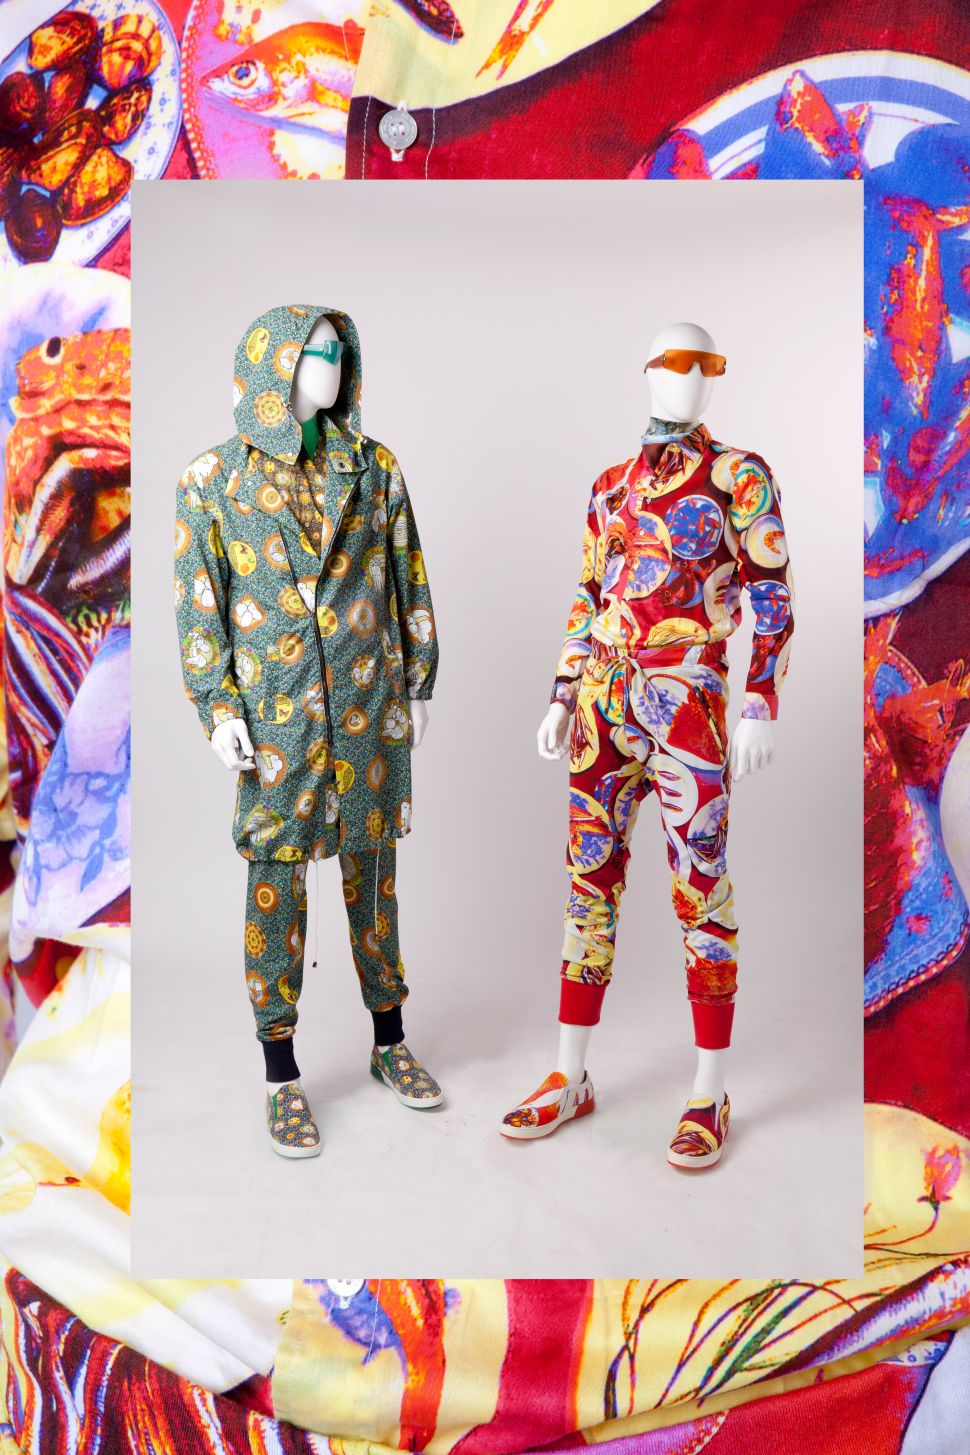 Euro ensembles with food-related prints